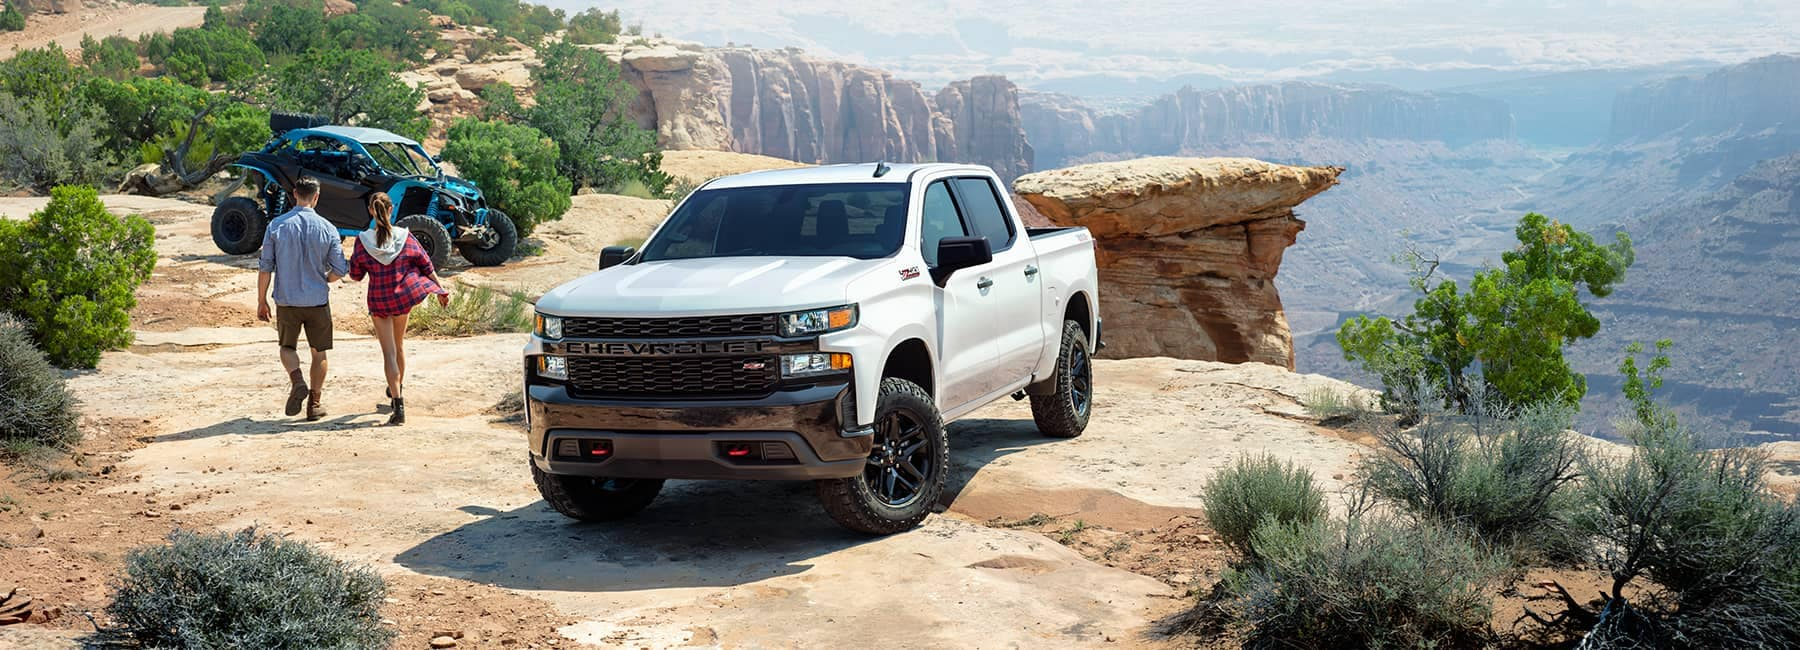 2020 White Chevy Truck by a cliff